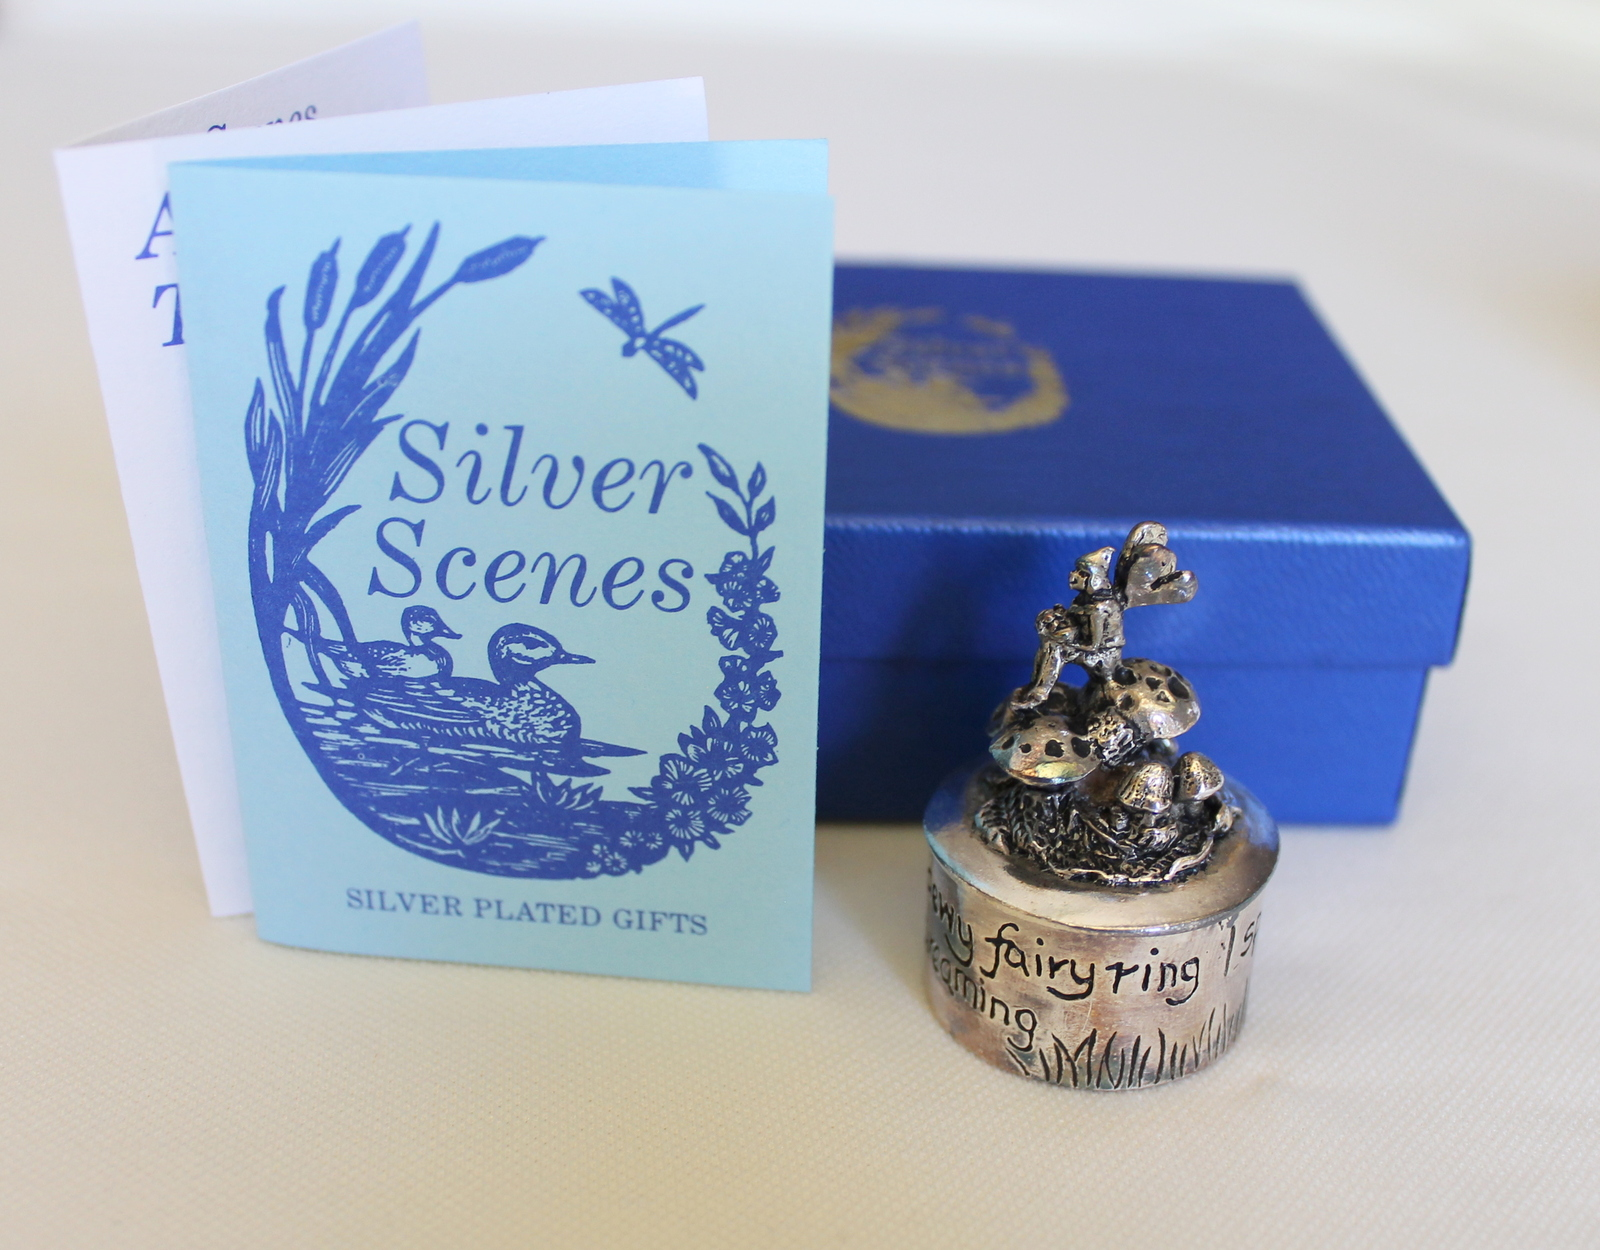 Silver Scenes Silver Plated Gifts, Elf Sitting on Mushrooms, Made in Wales